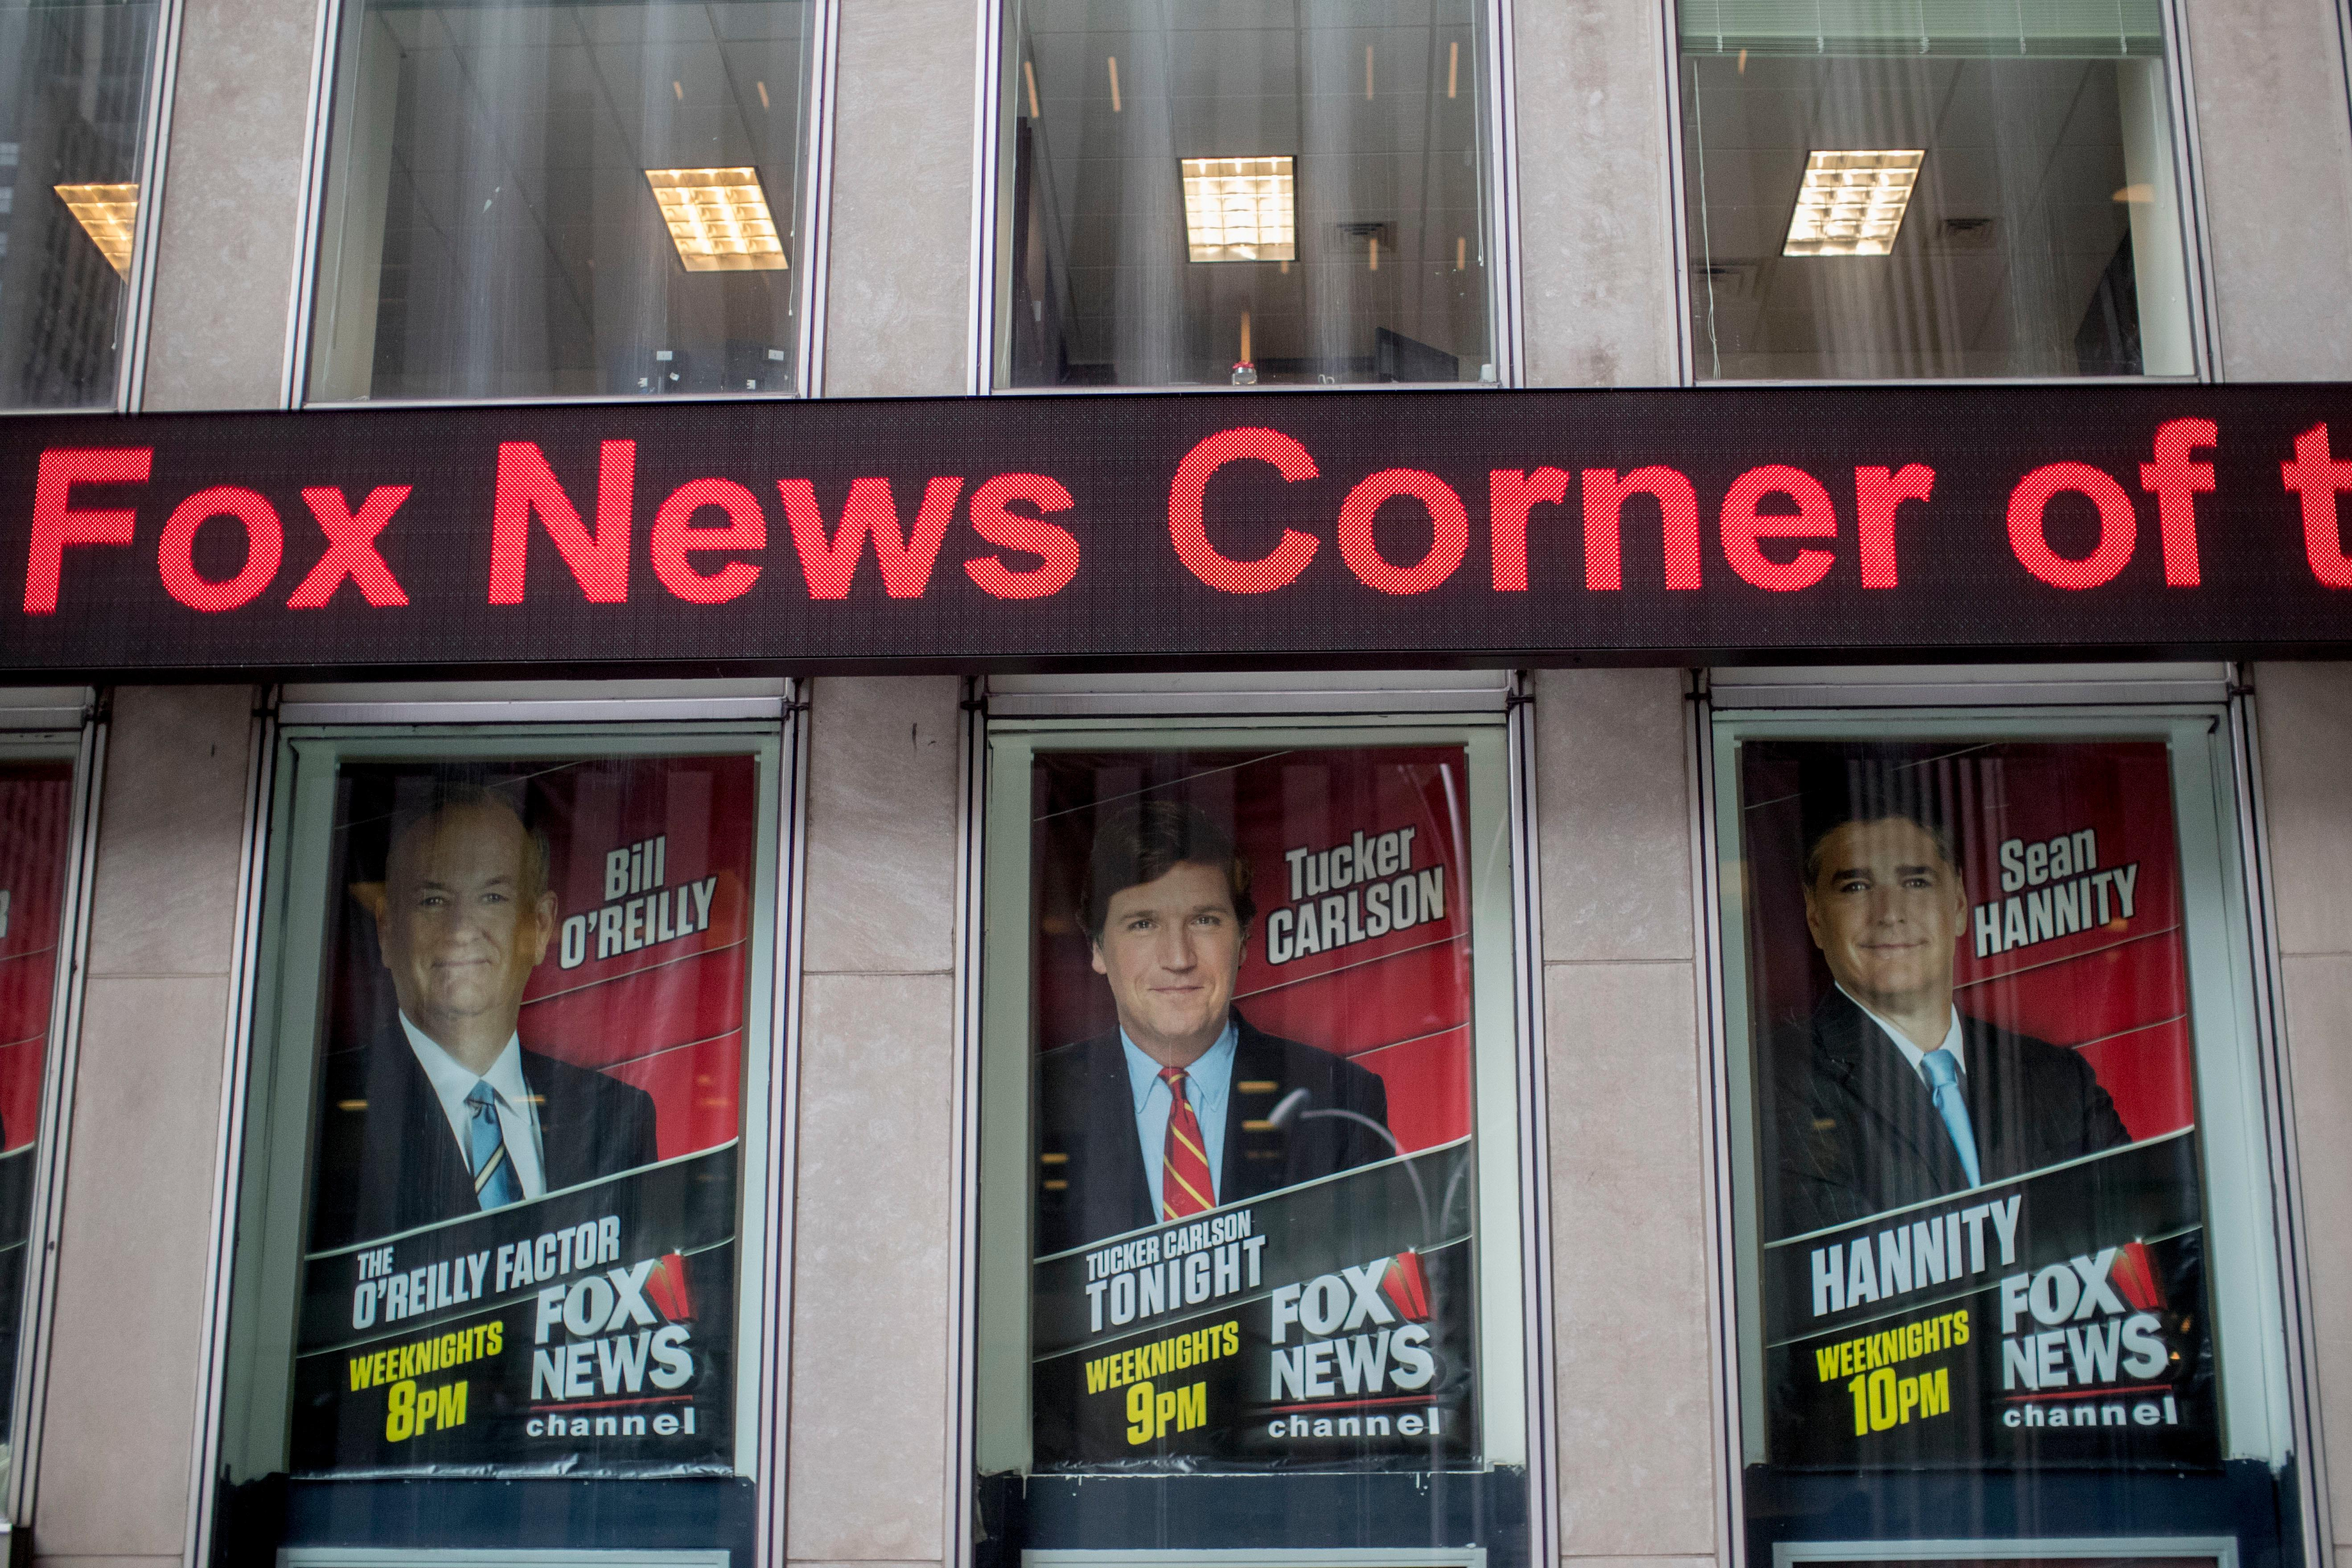 Posters of Fox News Channel personalities are displayed at the News Corp. headquarters in New York, Wednesday, April 19, 2017. There was no immediate response from Bill O'Reilly's bosses to escalating reports that the Fox News Channel personality will lose his job following accusations he had harassed women. New York magazine said Wednesday that Rupert Murdoch and his sons James and Lachlan, who run Fox parent 21st Century Fox, had decided that O'Reilly was out and executives were planning  the exit. (AP Photo/Mary Altaffer)